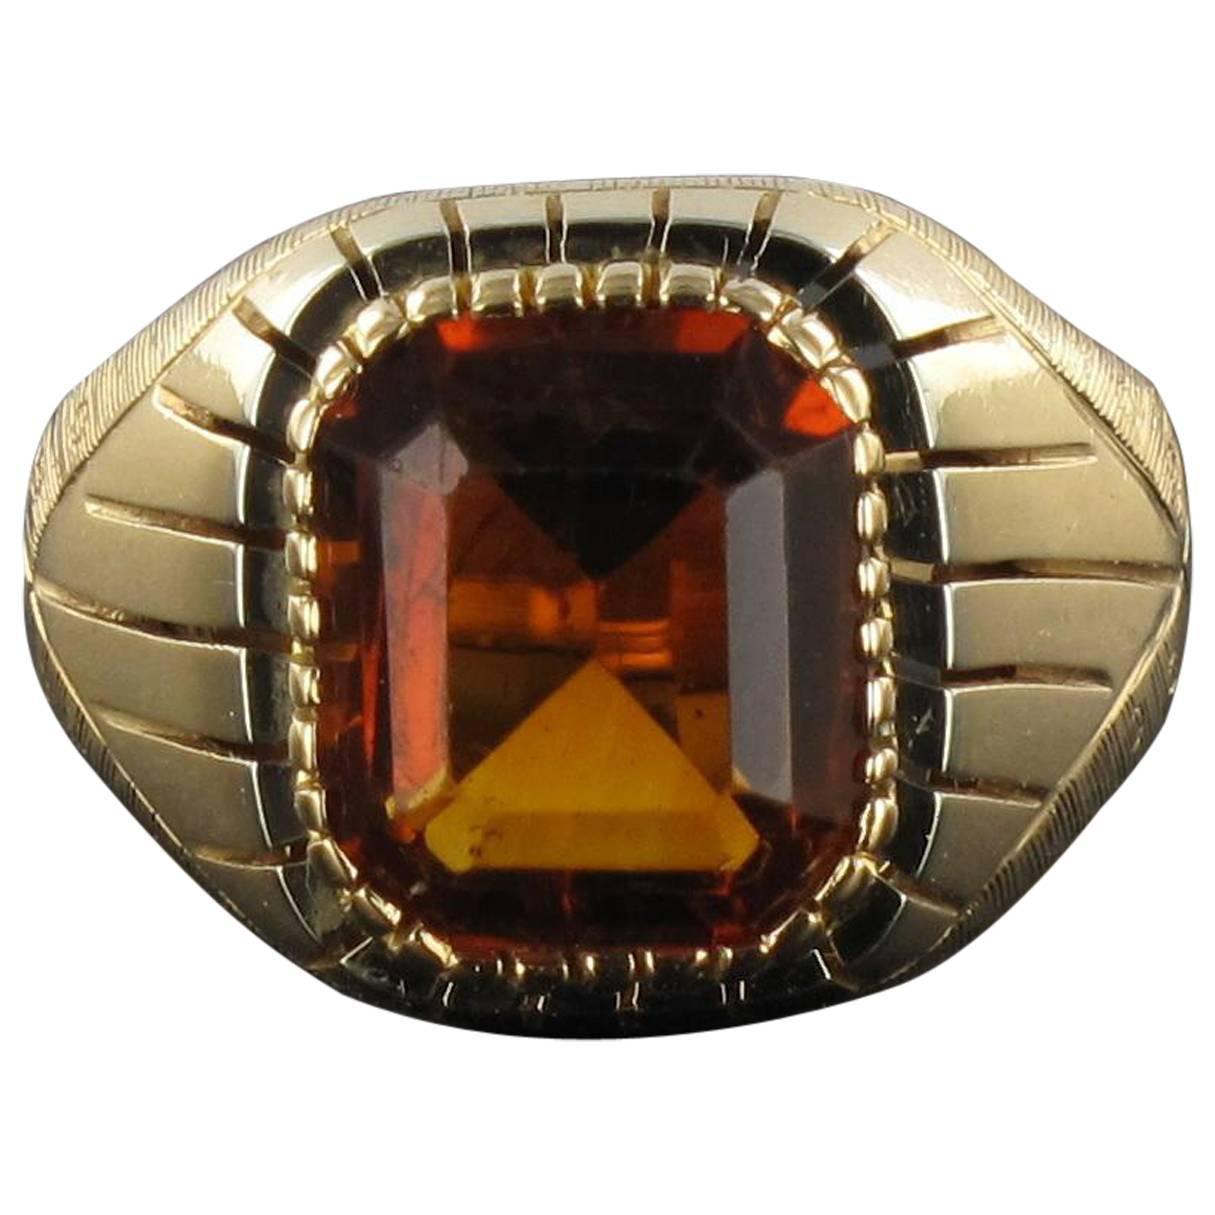 Antique Haematoid Quartz Gold Signet Ring For Sale at 1stdibs